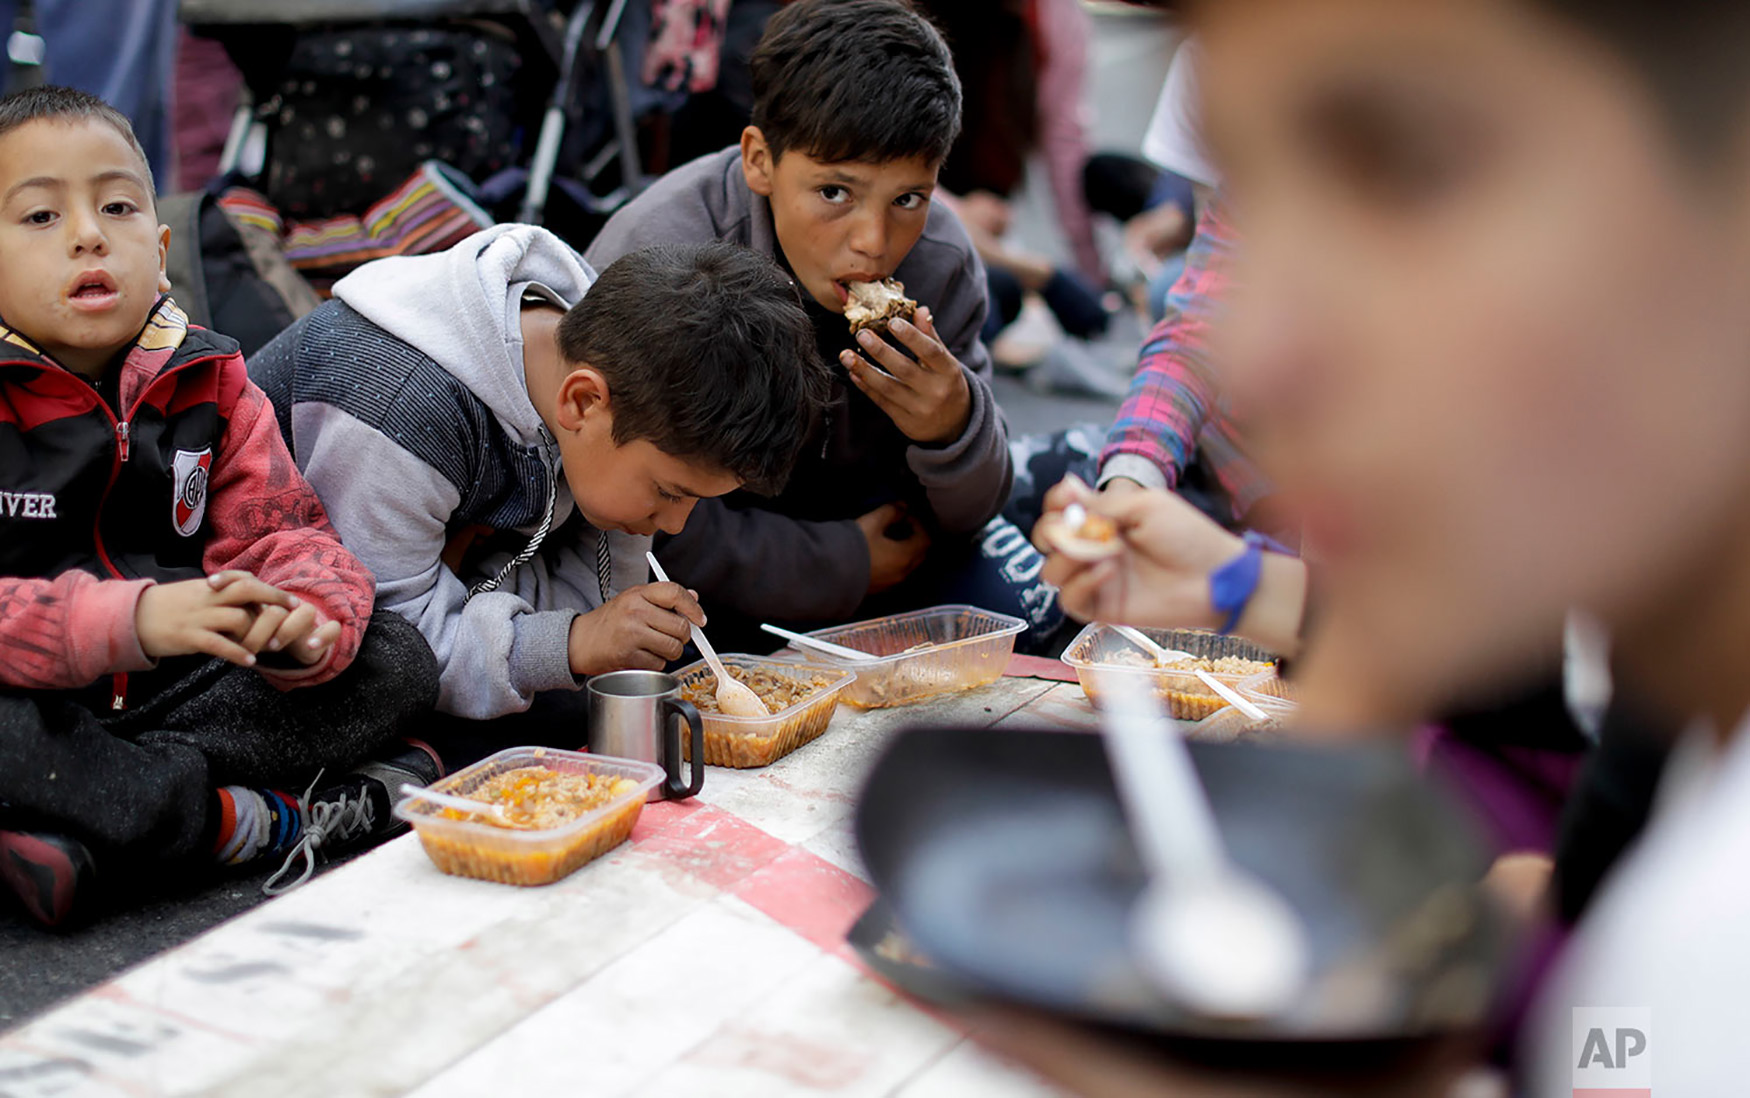 Children eat free food where demonstrators set up a soup kitchen along a main avenue that connects the government house with Congress as a way to protest government economic measures in Buenos Aires, Argentina, Sept. 11, 2018. Consumer prices are soaring, unemployment is high and the Argentine peso has plunged, bringing back haunting memories of the country's economic meltdown in 2001 that pushed millions into poverty. (AP Photo/Natacha Pisarenko)